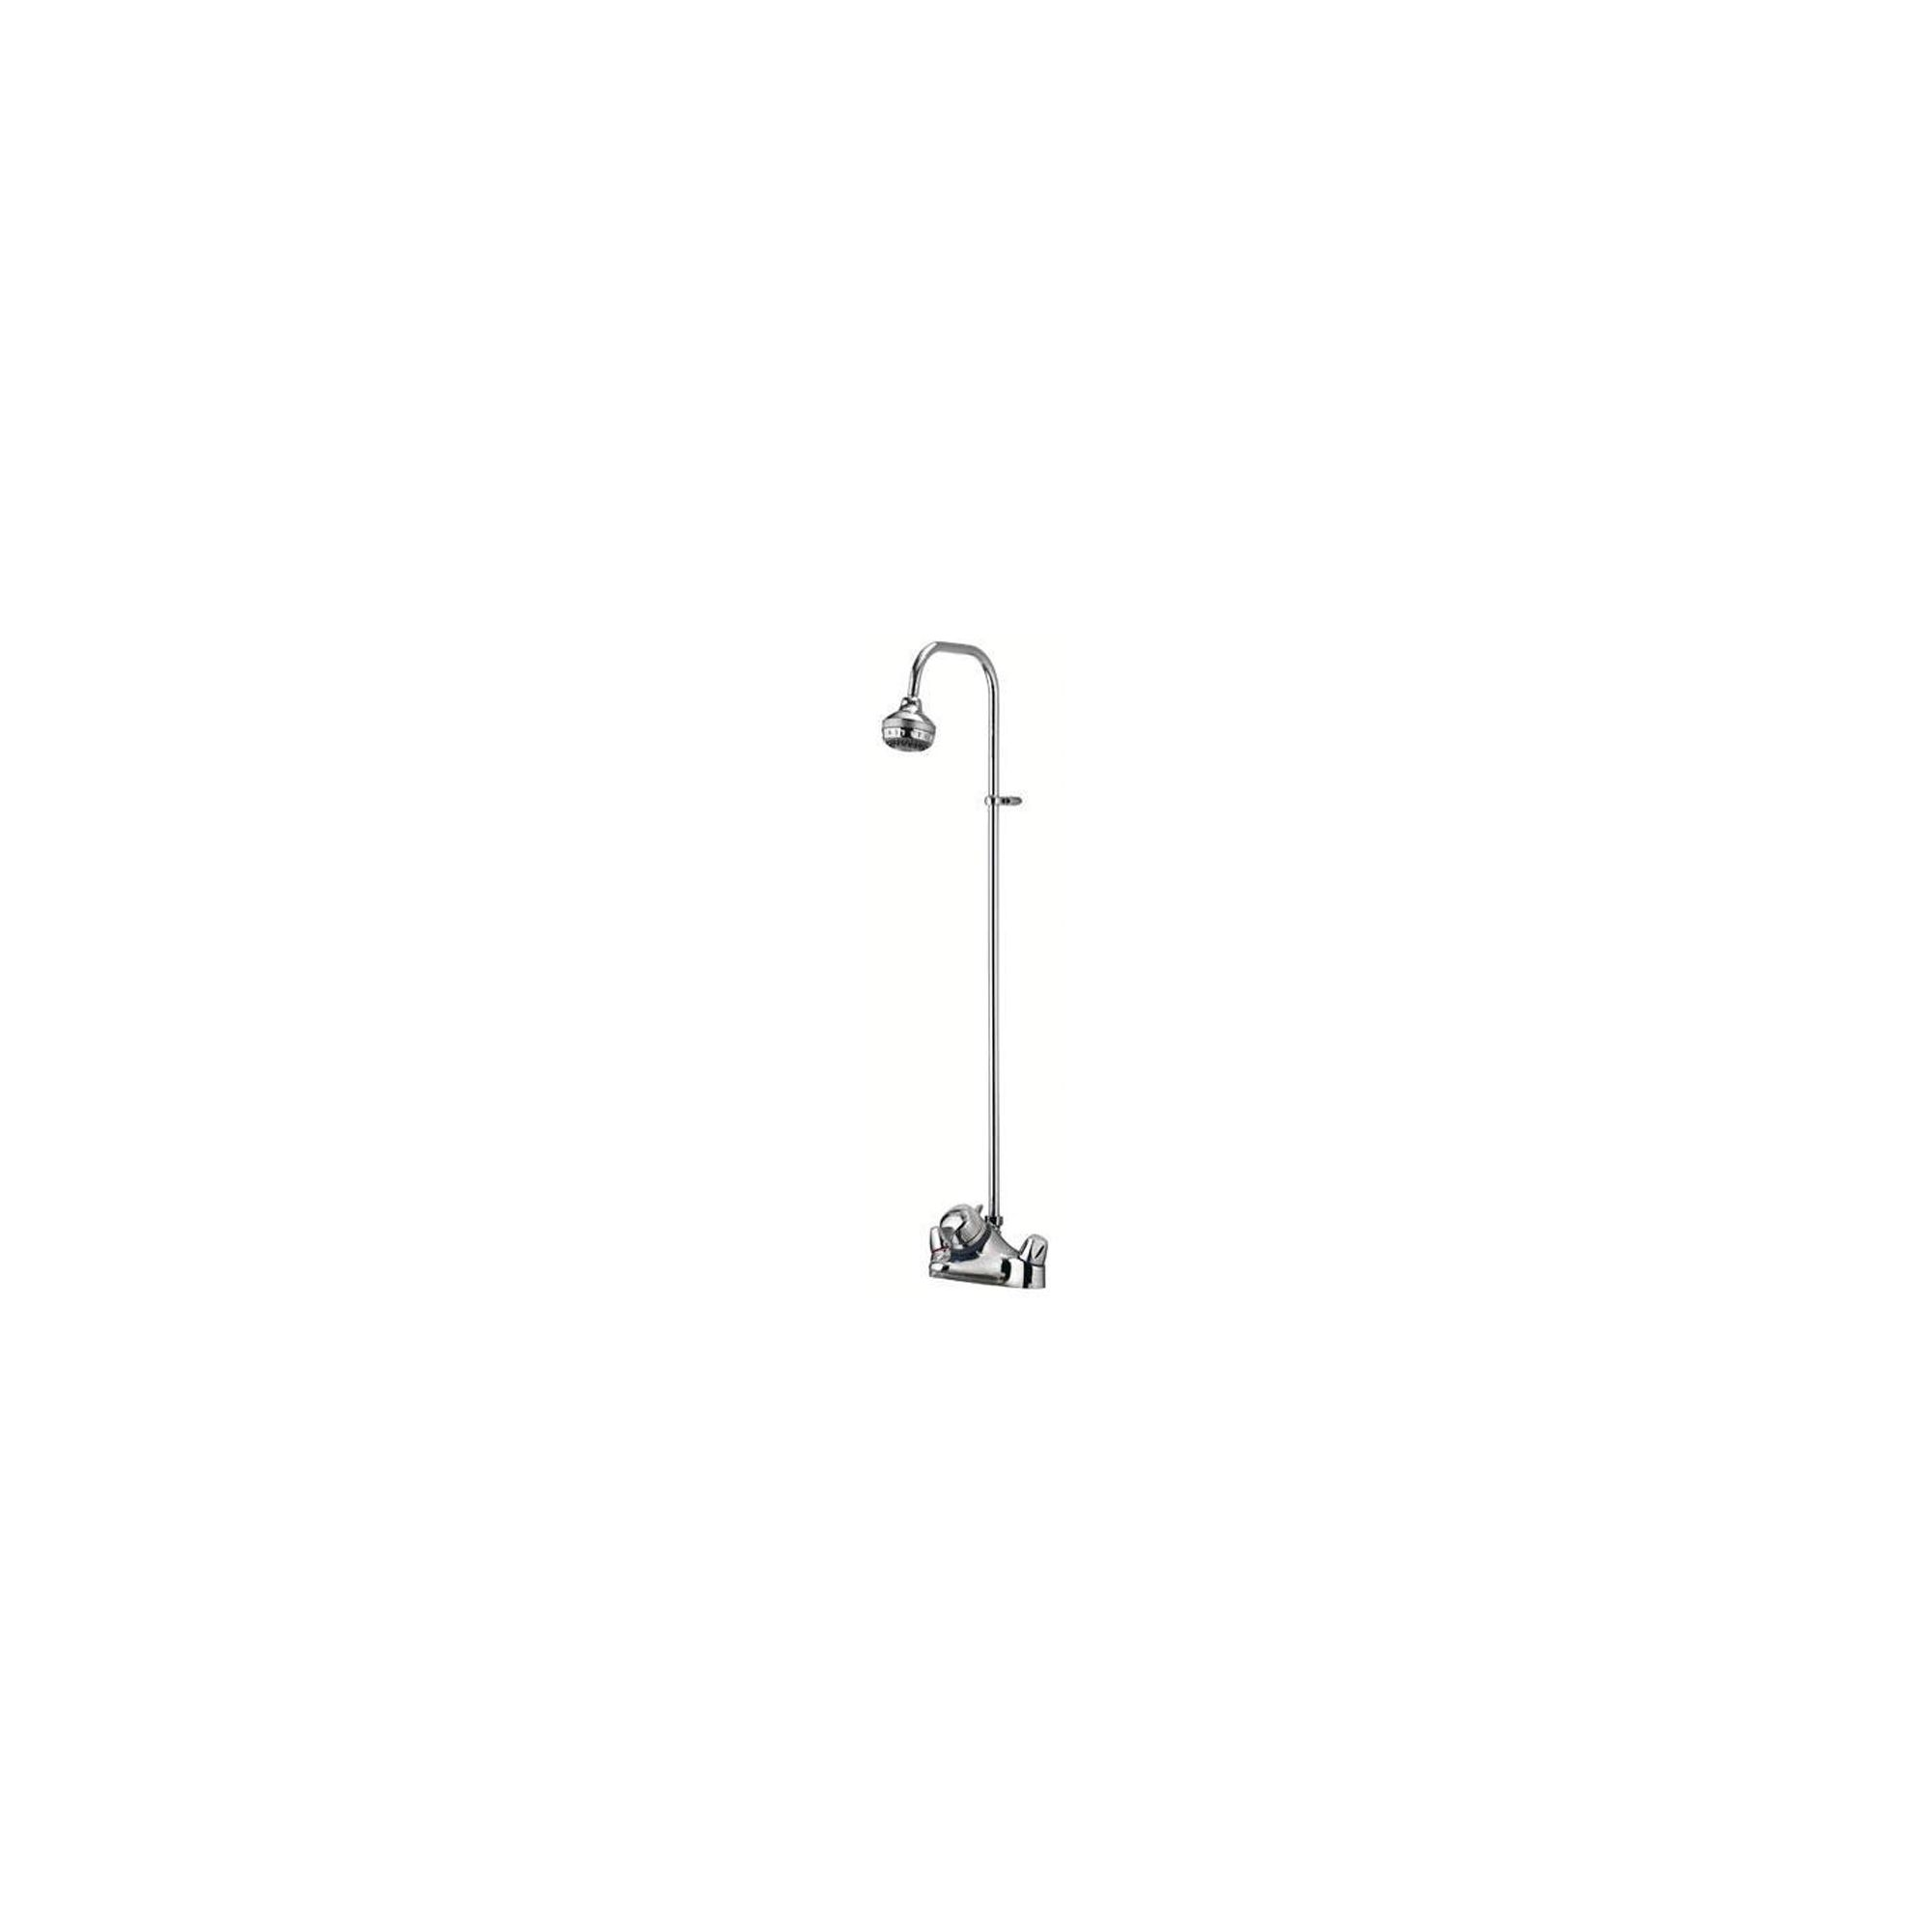 Aqualisa Aquamixa Thermo Shower Valve with Exposed Shower Head Chrome at Tesco Direct